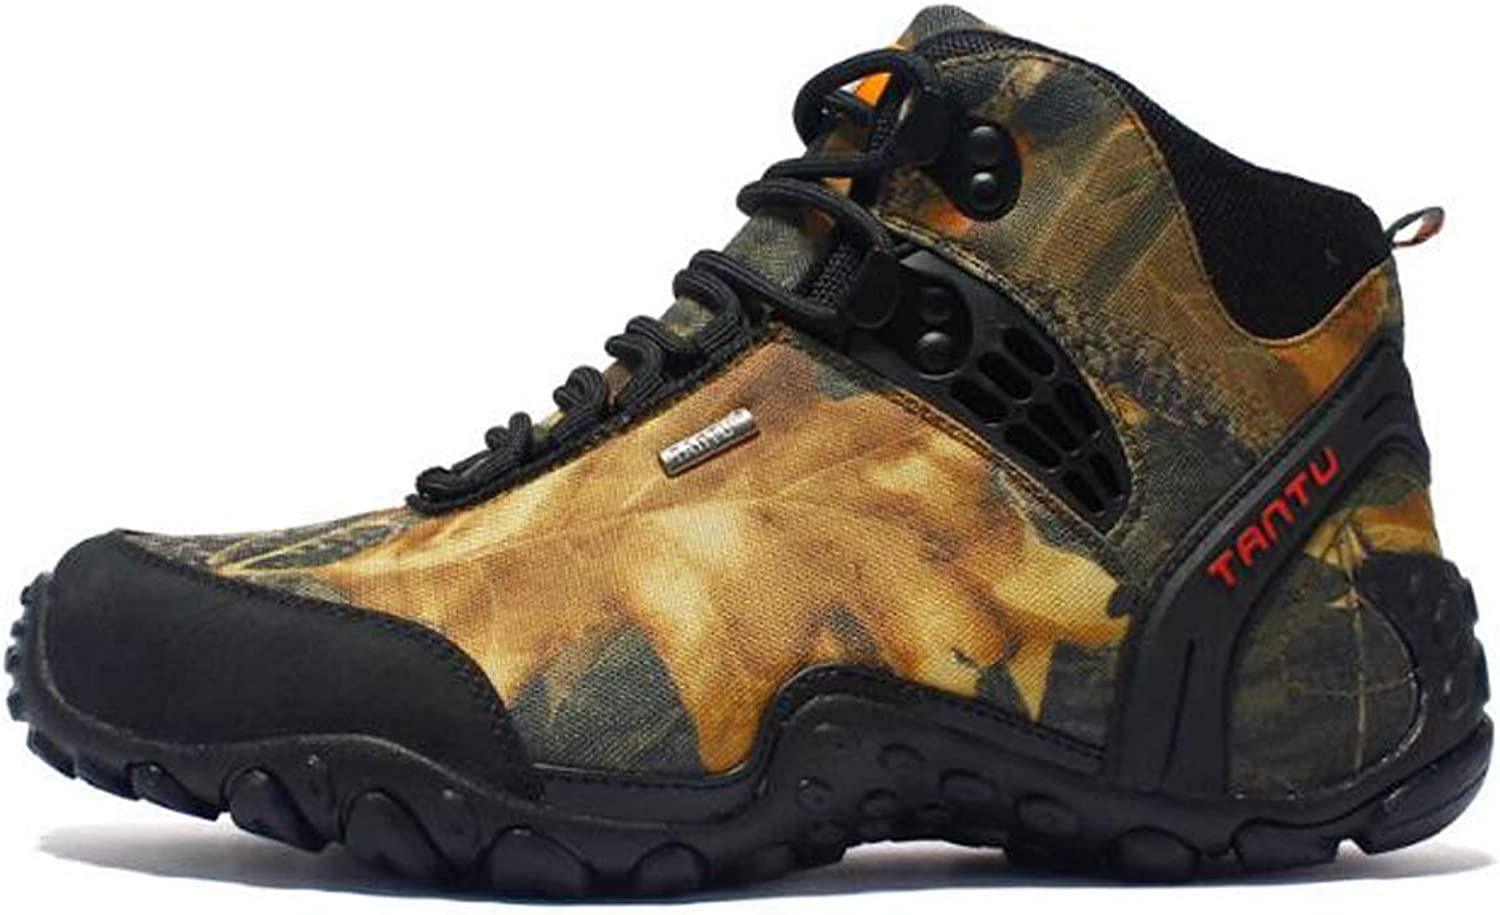 Adong Men's Water-Repellent Hiking Boots Military High-top shoes Tactical Jungle Trekking shoes Lace Up Work Combat All Terrain Wear-resistant Boots,B,43EU